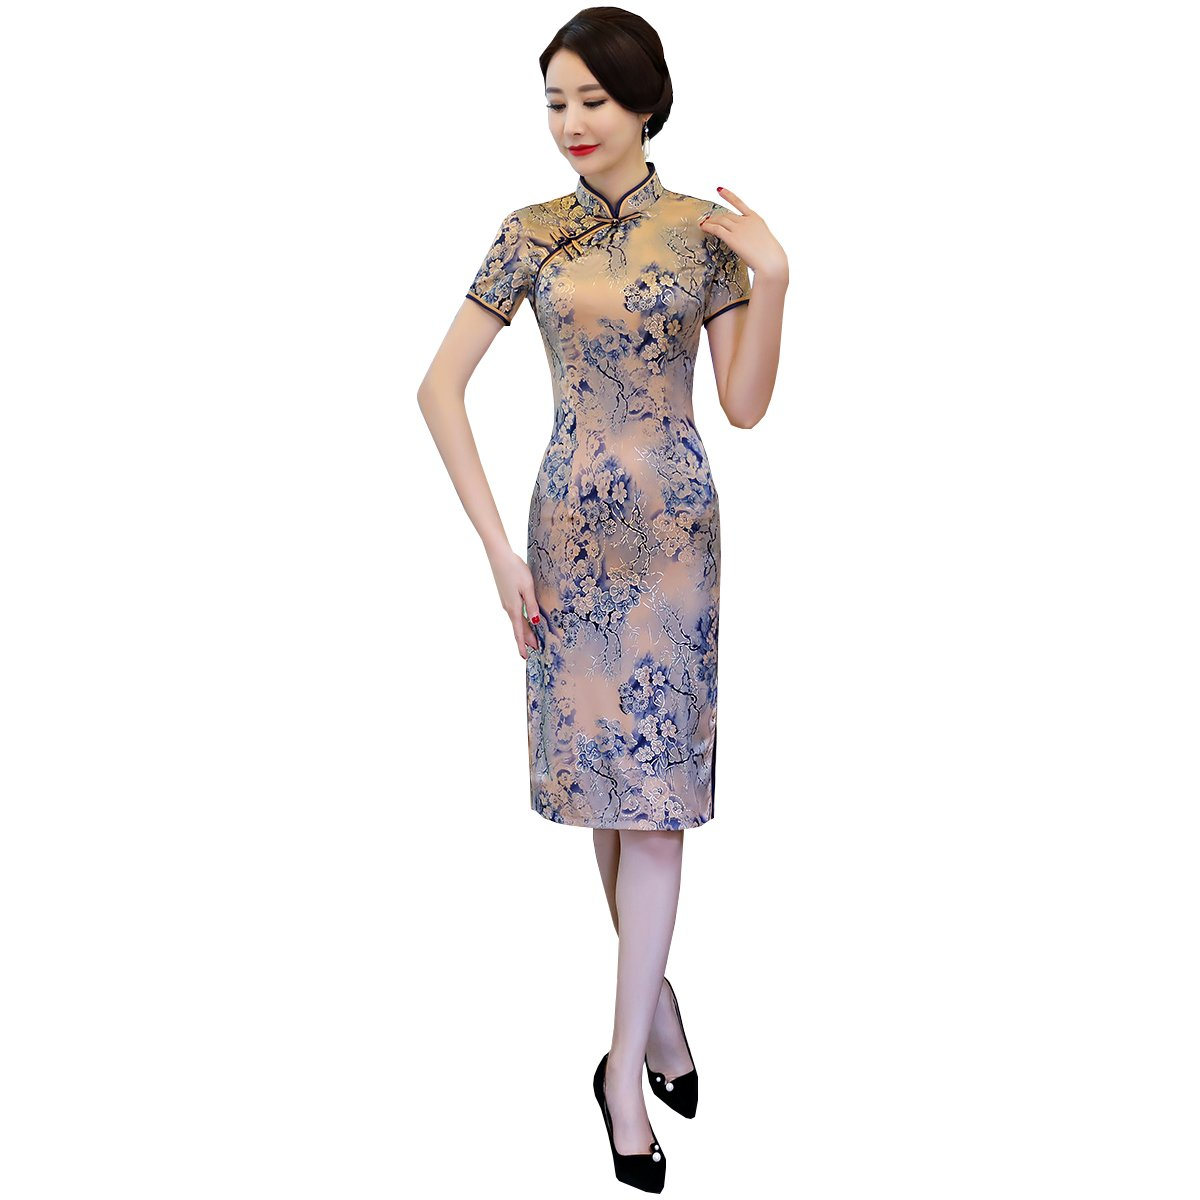 KUFEIUP Chinese Traditional Cheongsam Qipao Wedding Dress For Women